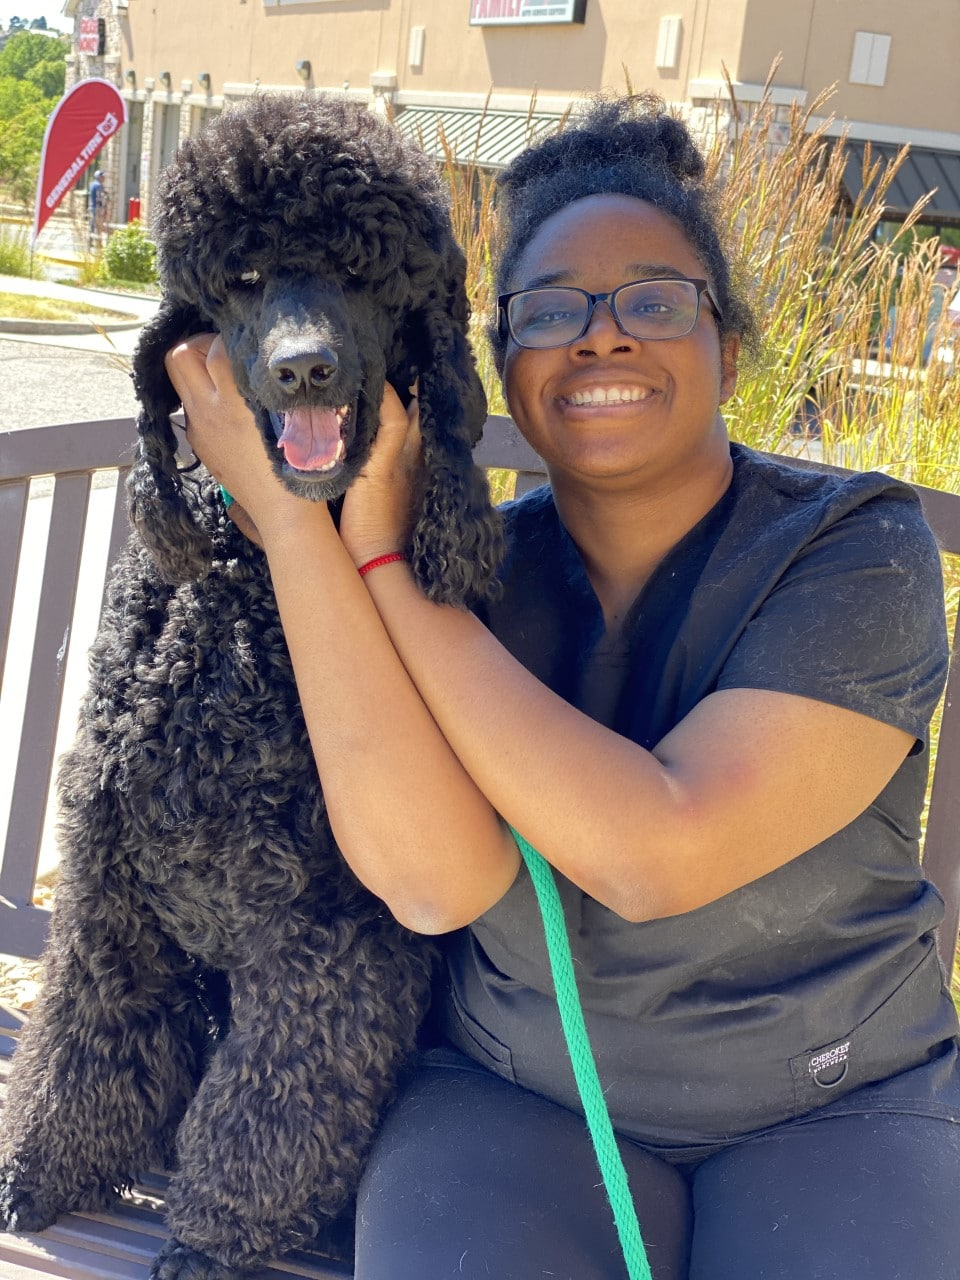 Woman with Black Poodle